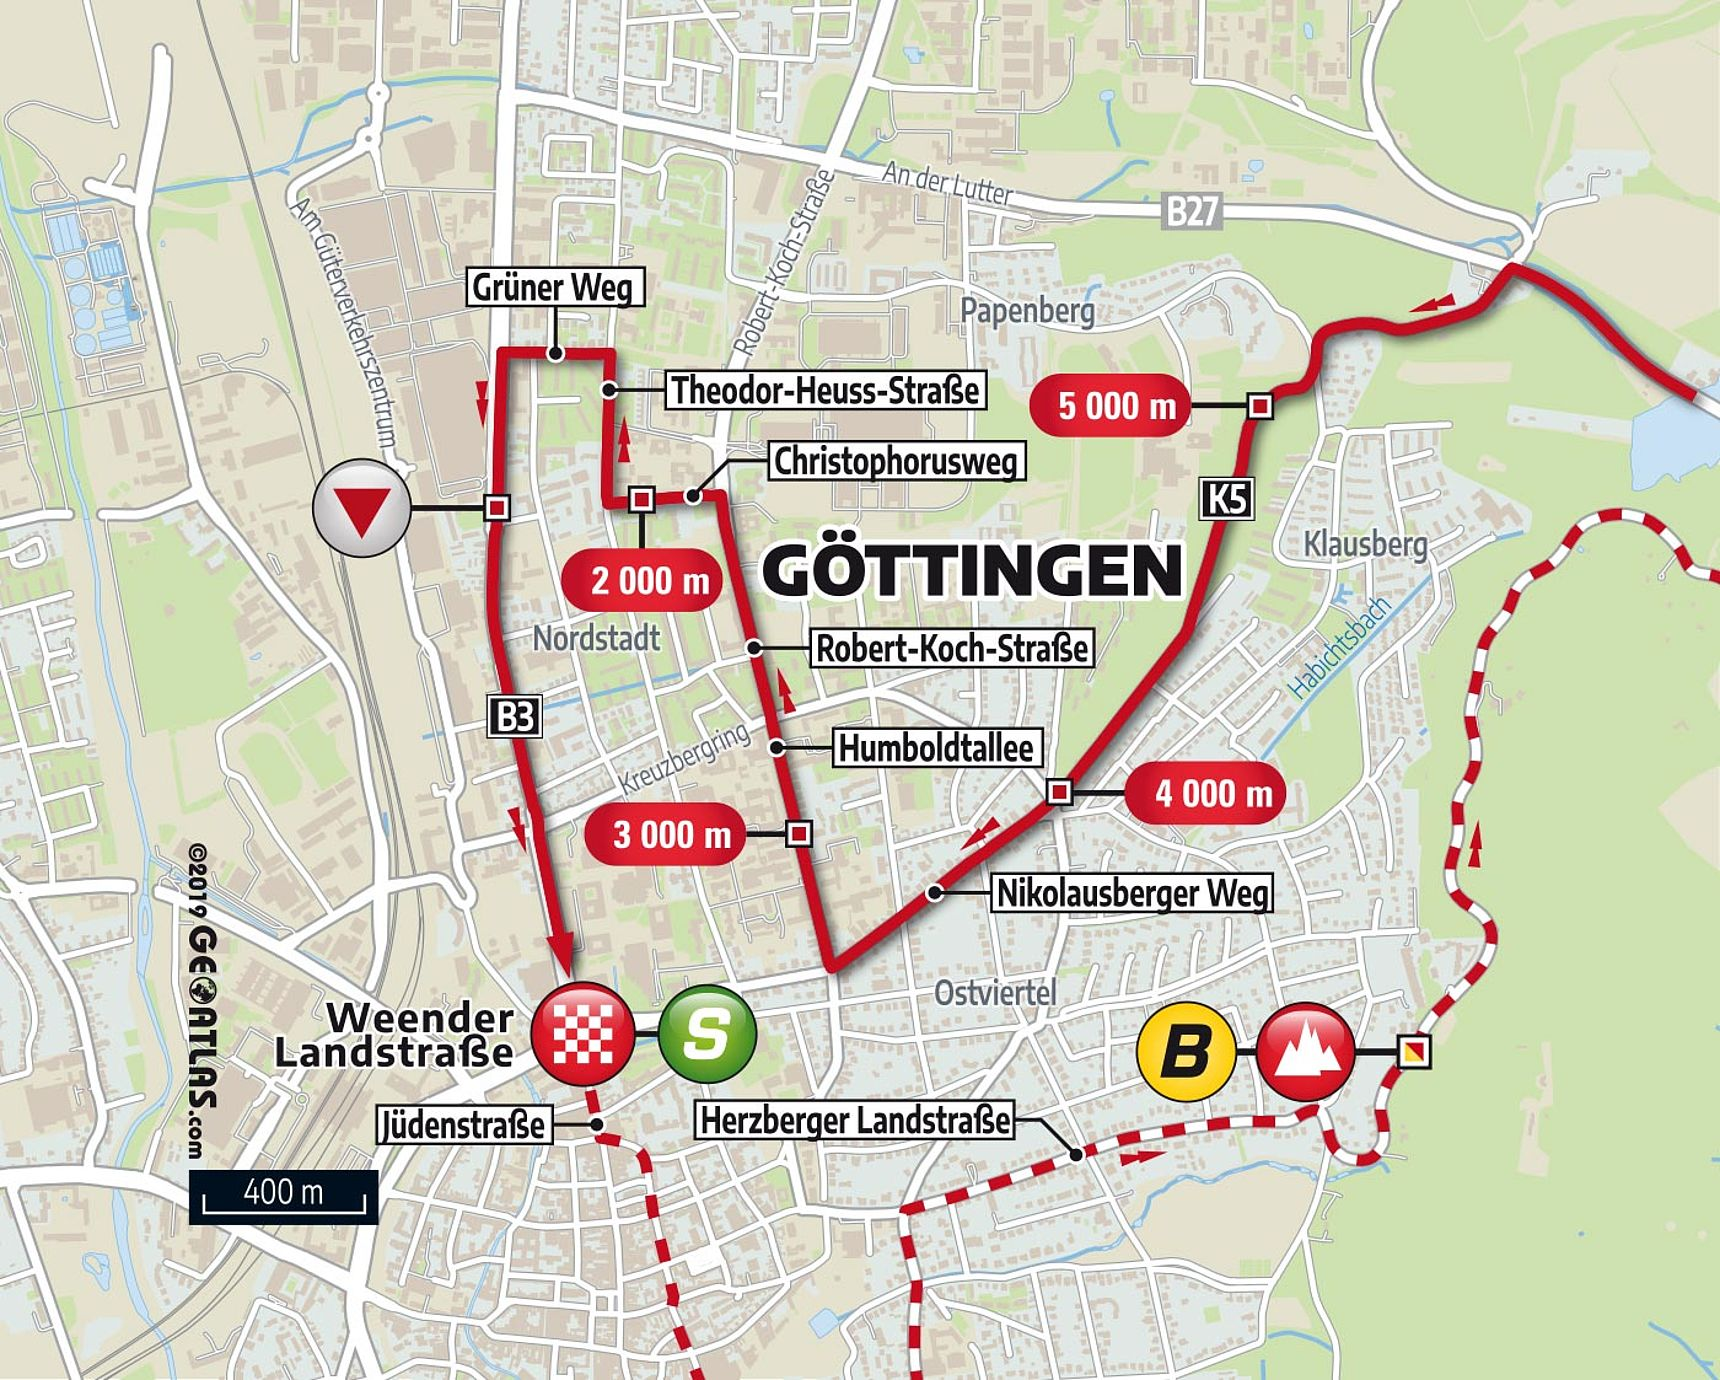 [Translate to English:] Letzte 5km in Göttingen